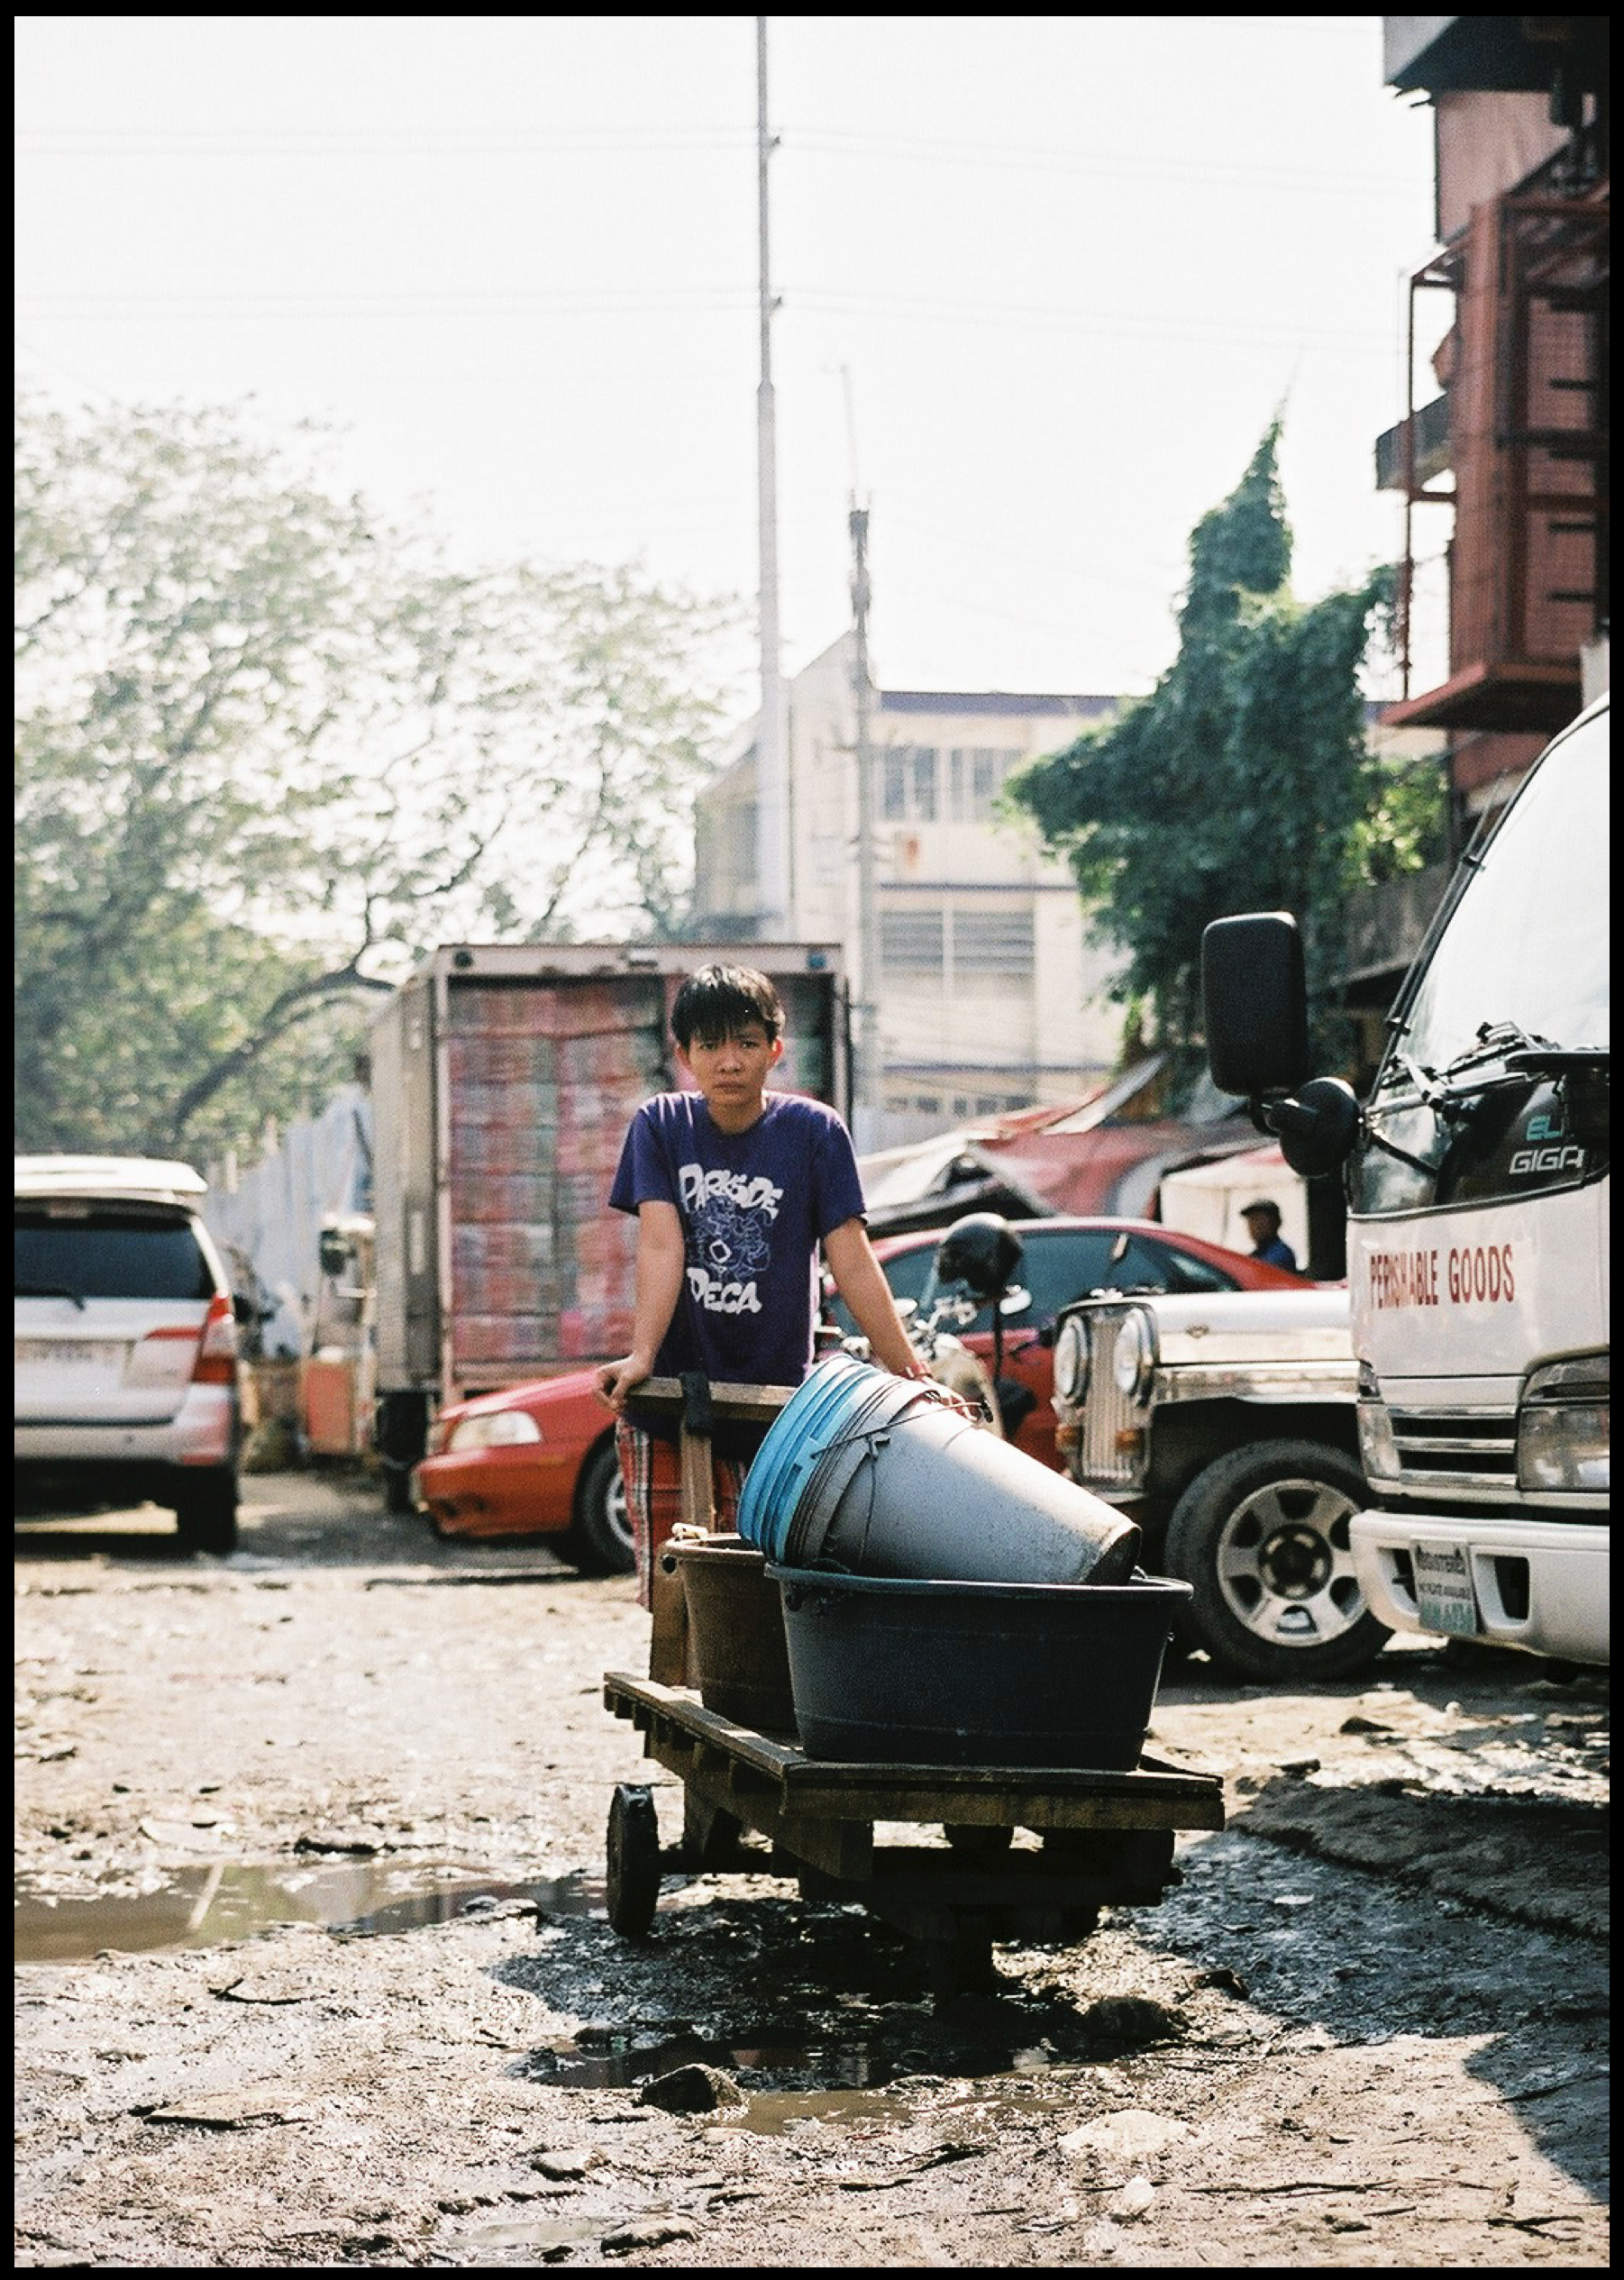 CoxCo_daily_life_Philippines 2019-08-04 14.10.55.png